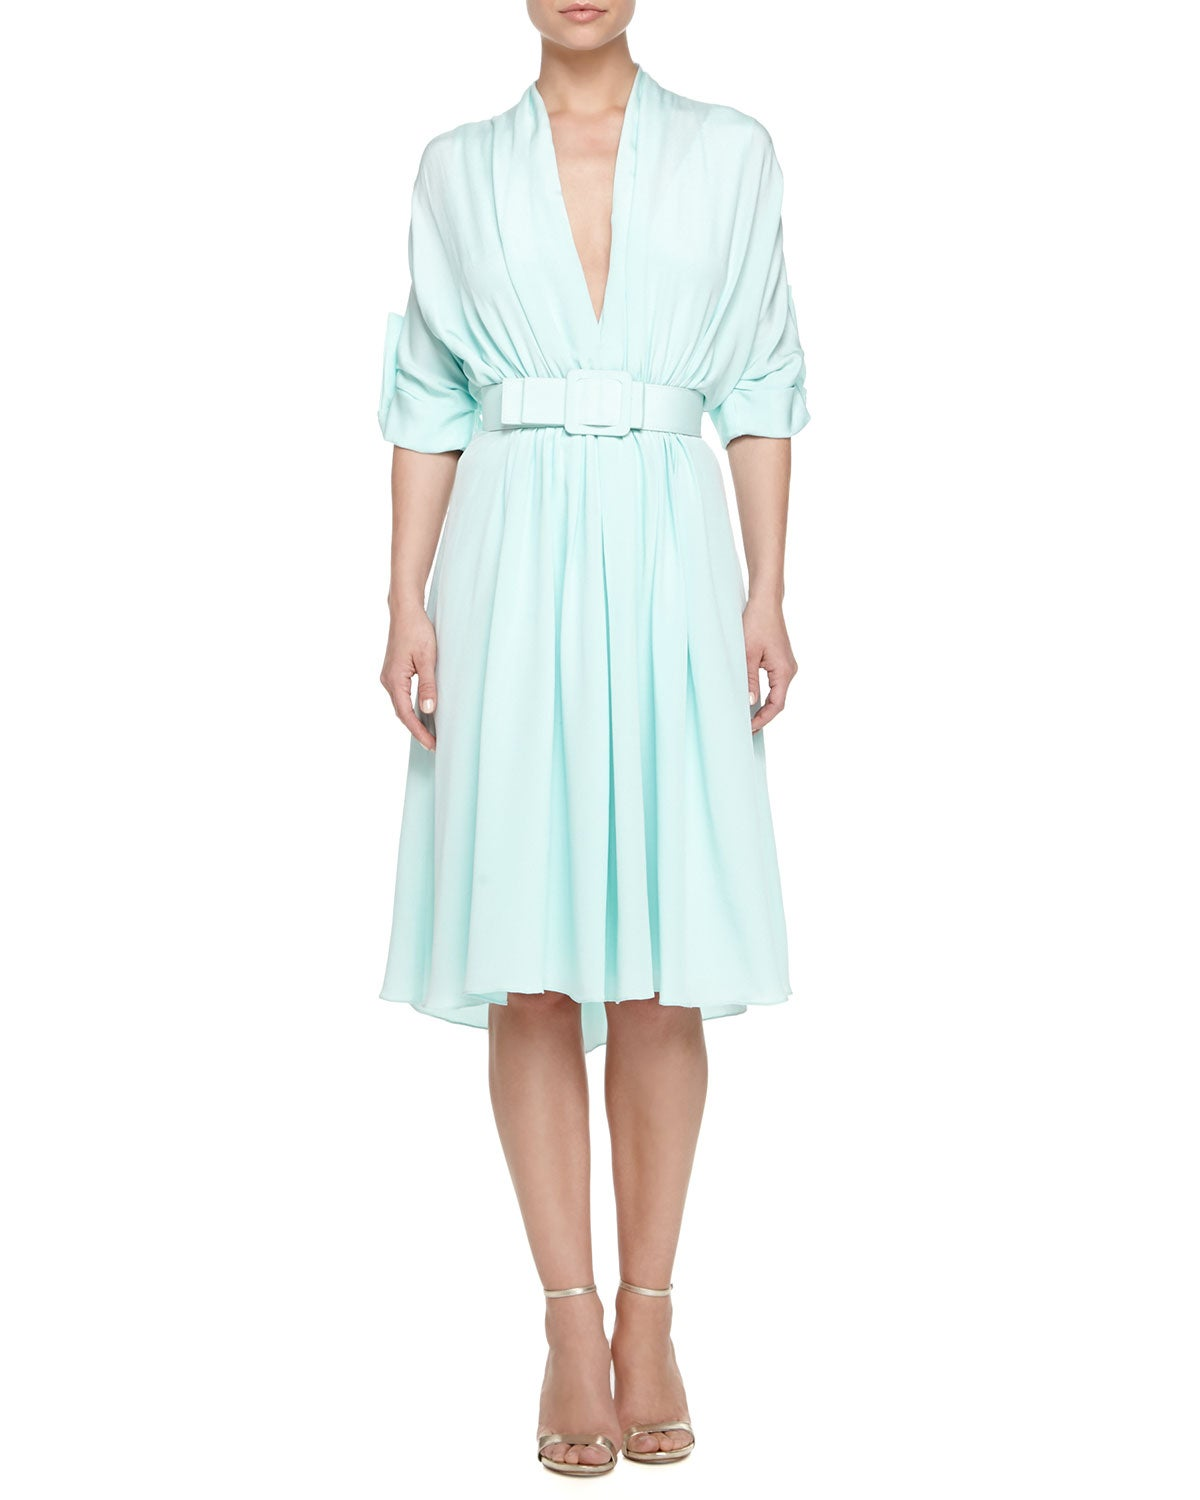 Badgley Mischka Women's Mint Green 100-percent Silk Pleated Dress